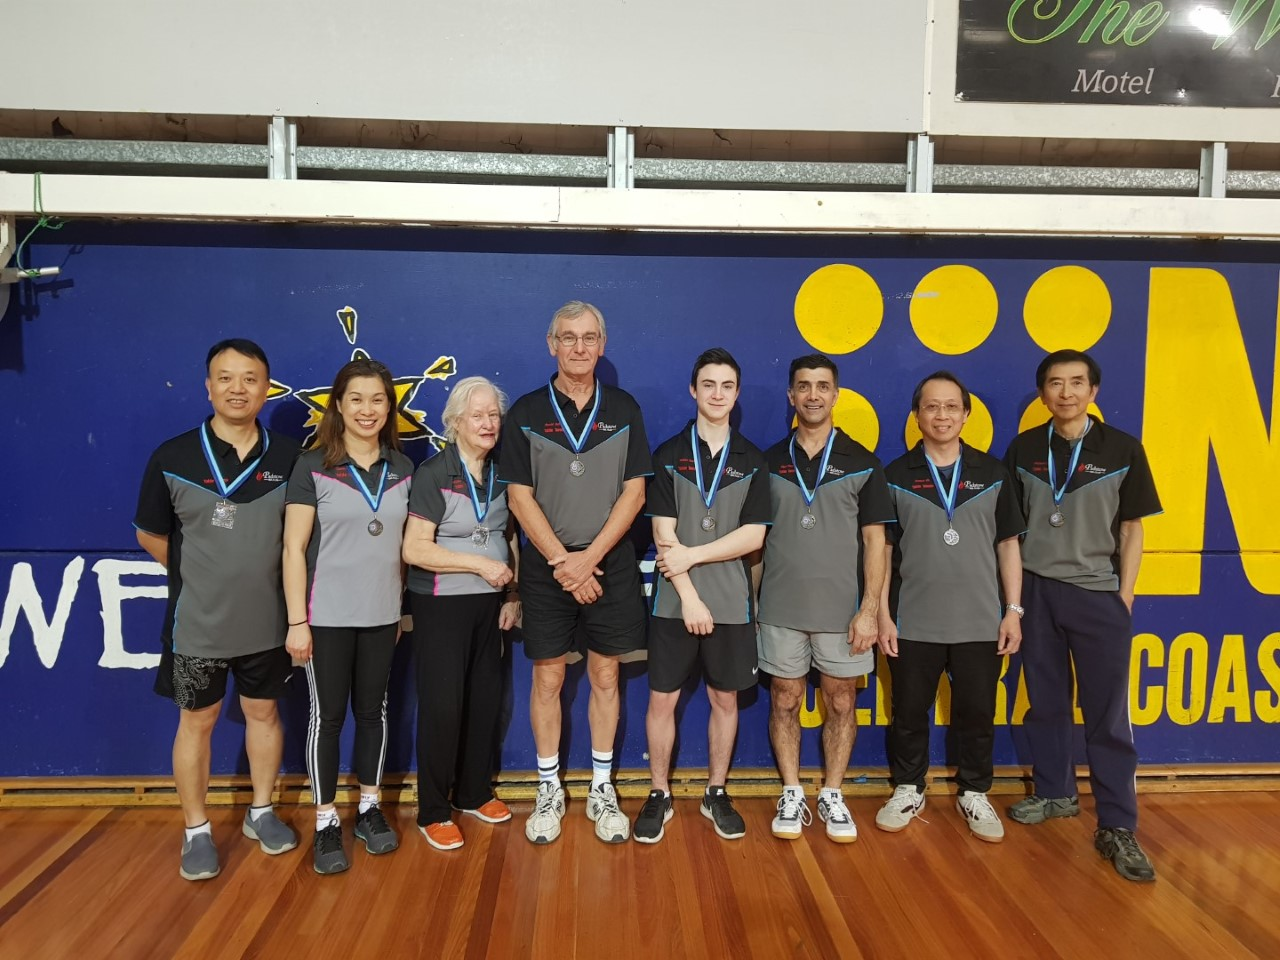 Our players from left are Simon, Connie, Gillian, David, Tom, Rodger, Thomas & Michael at the 2018 City V Country Table Tennis Competition.